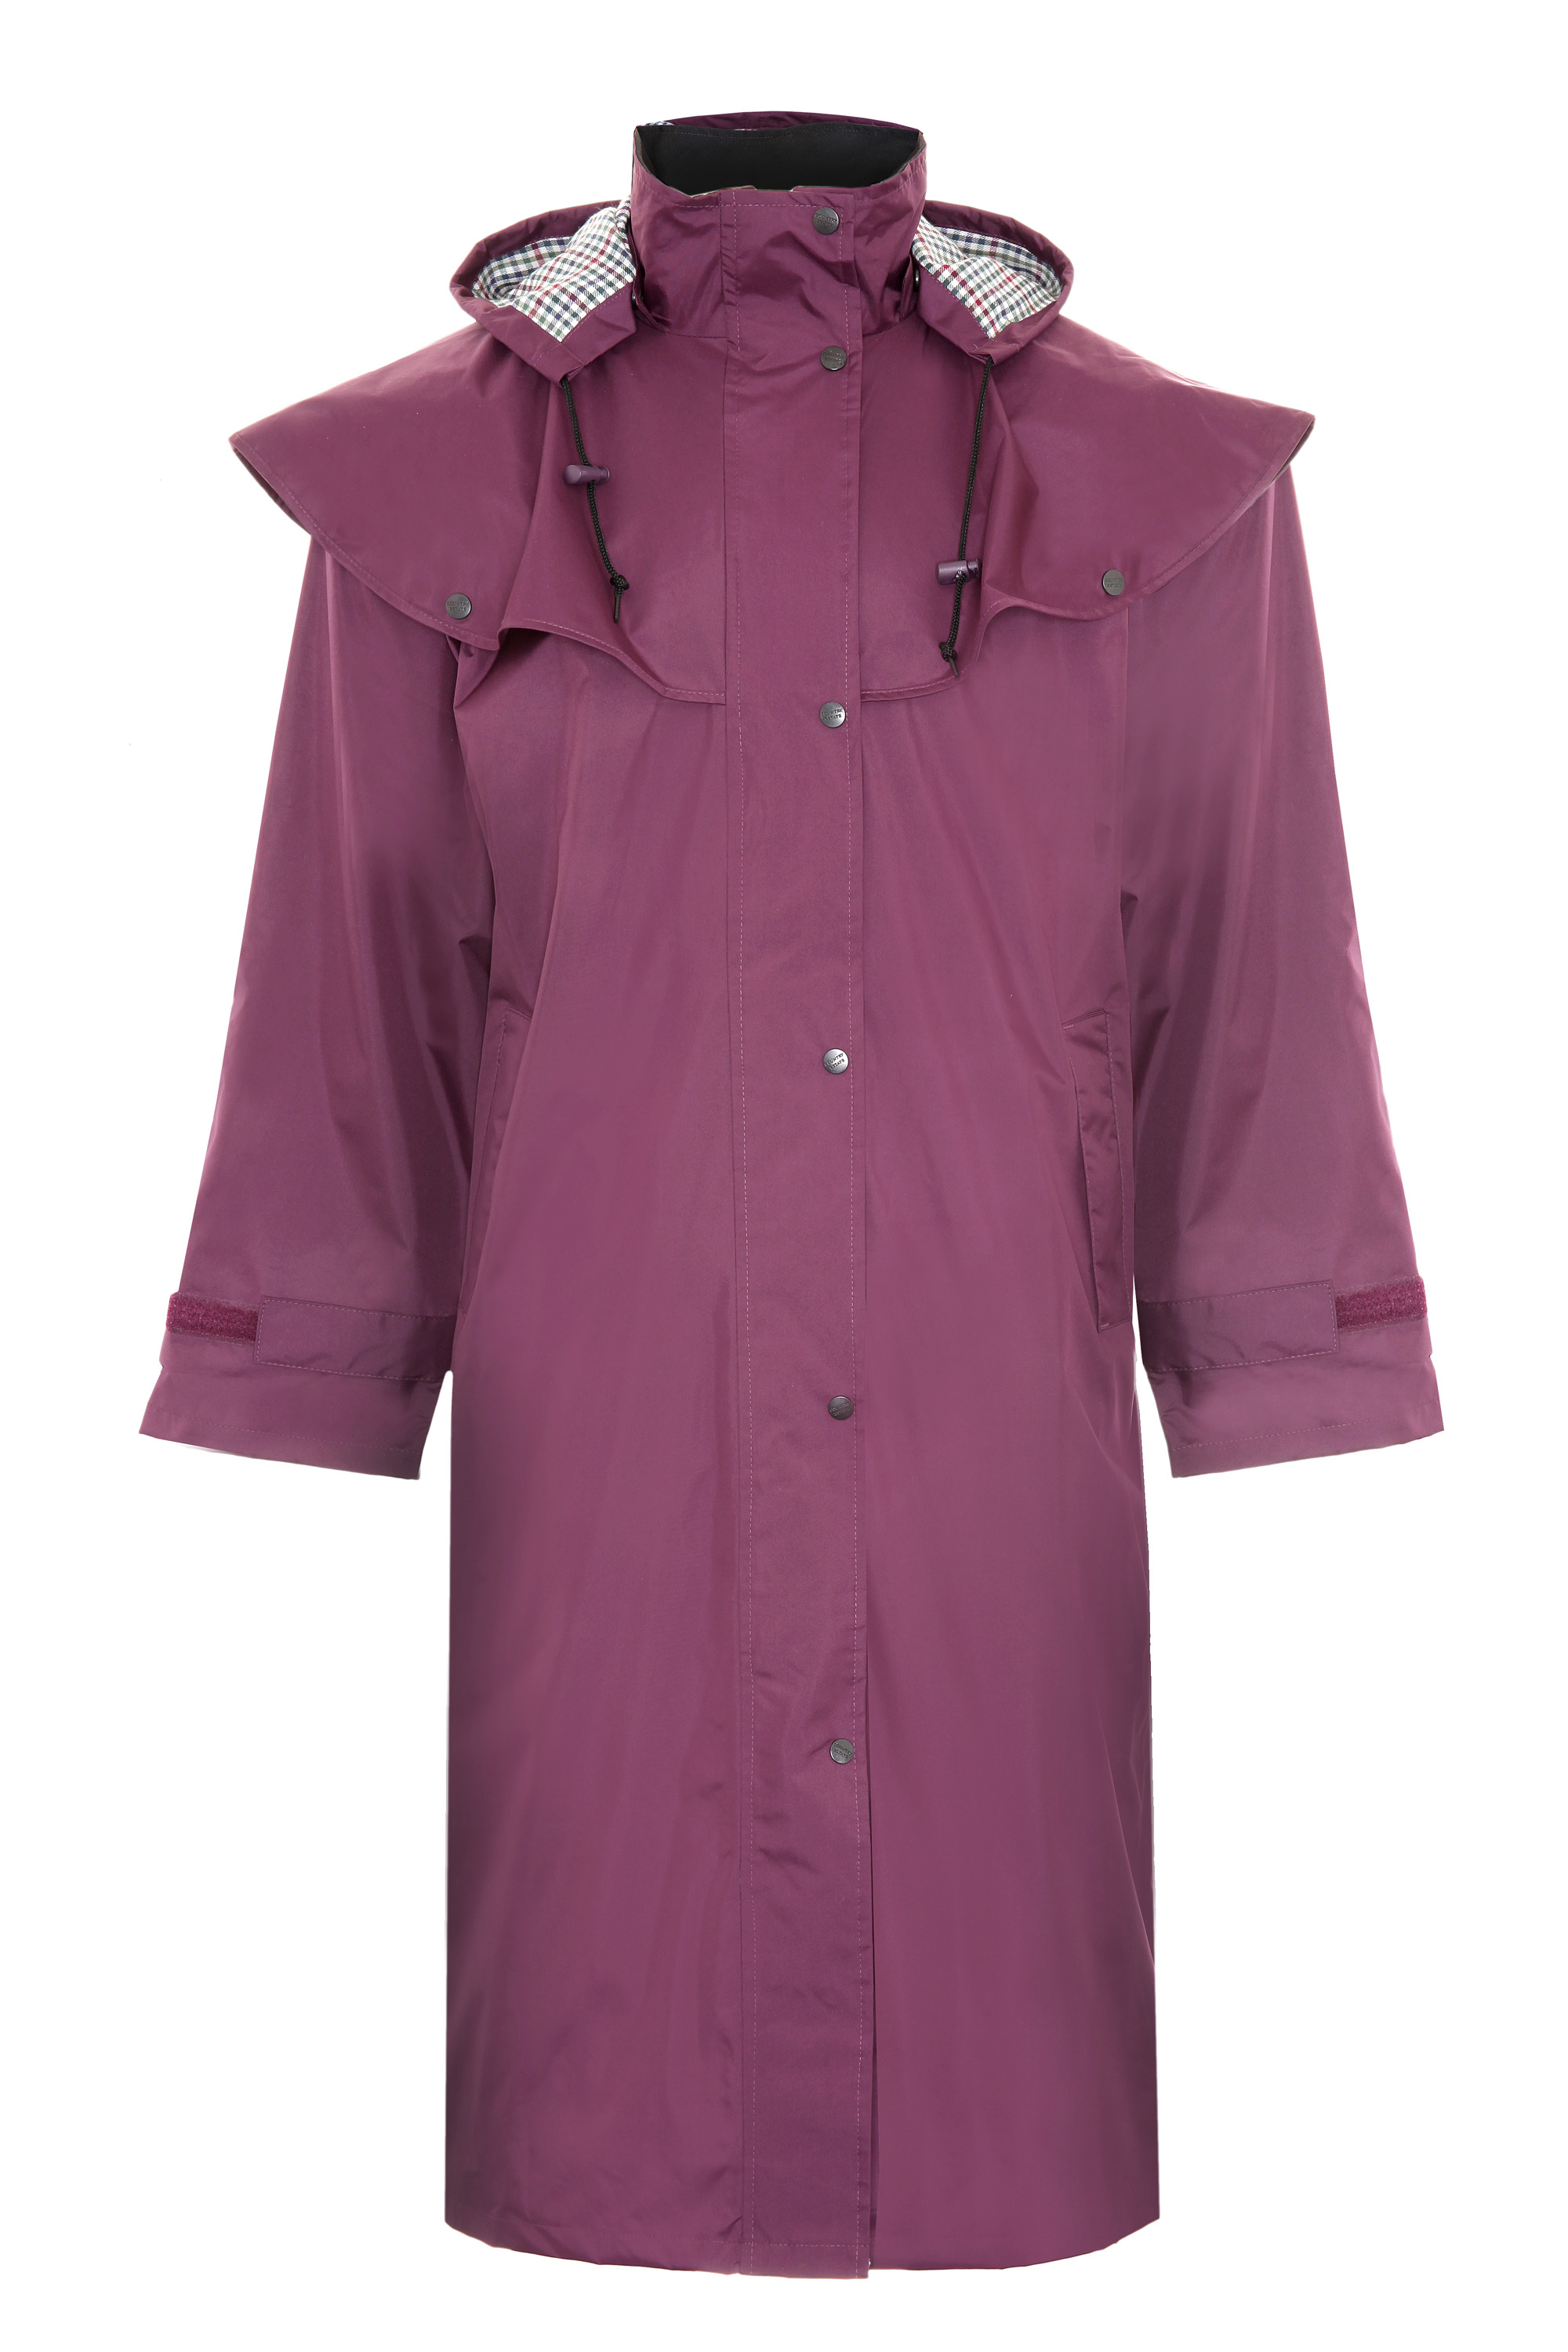 Find great deals on eBay for long waterproof coat womens. Shop with confidence.